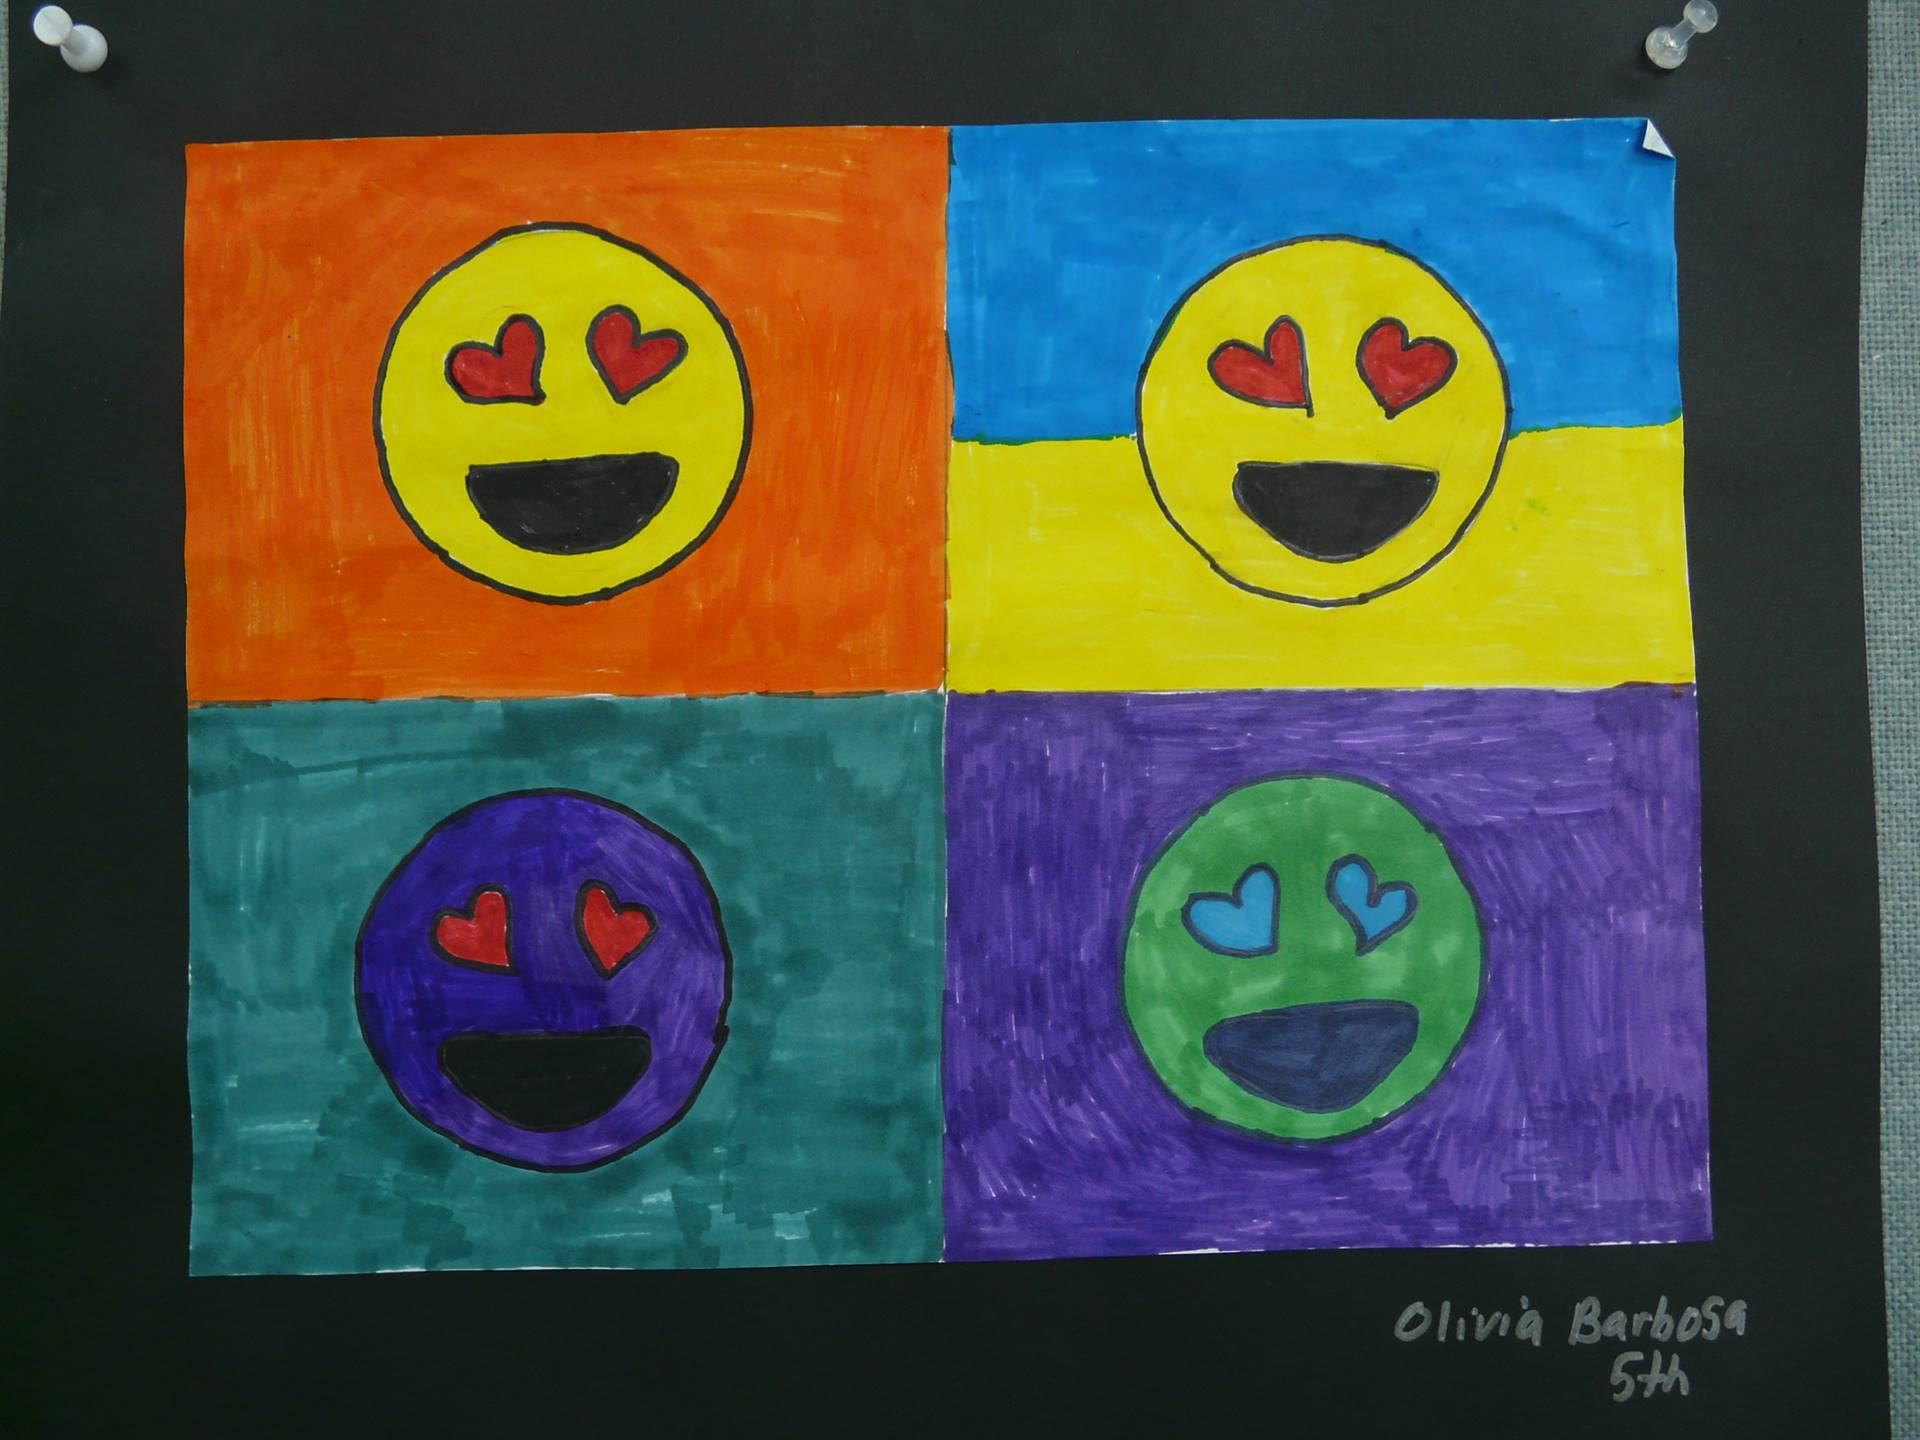 4 smiley faces in boxes-  all different colors with hearts at eyes